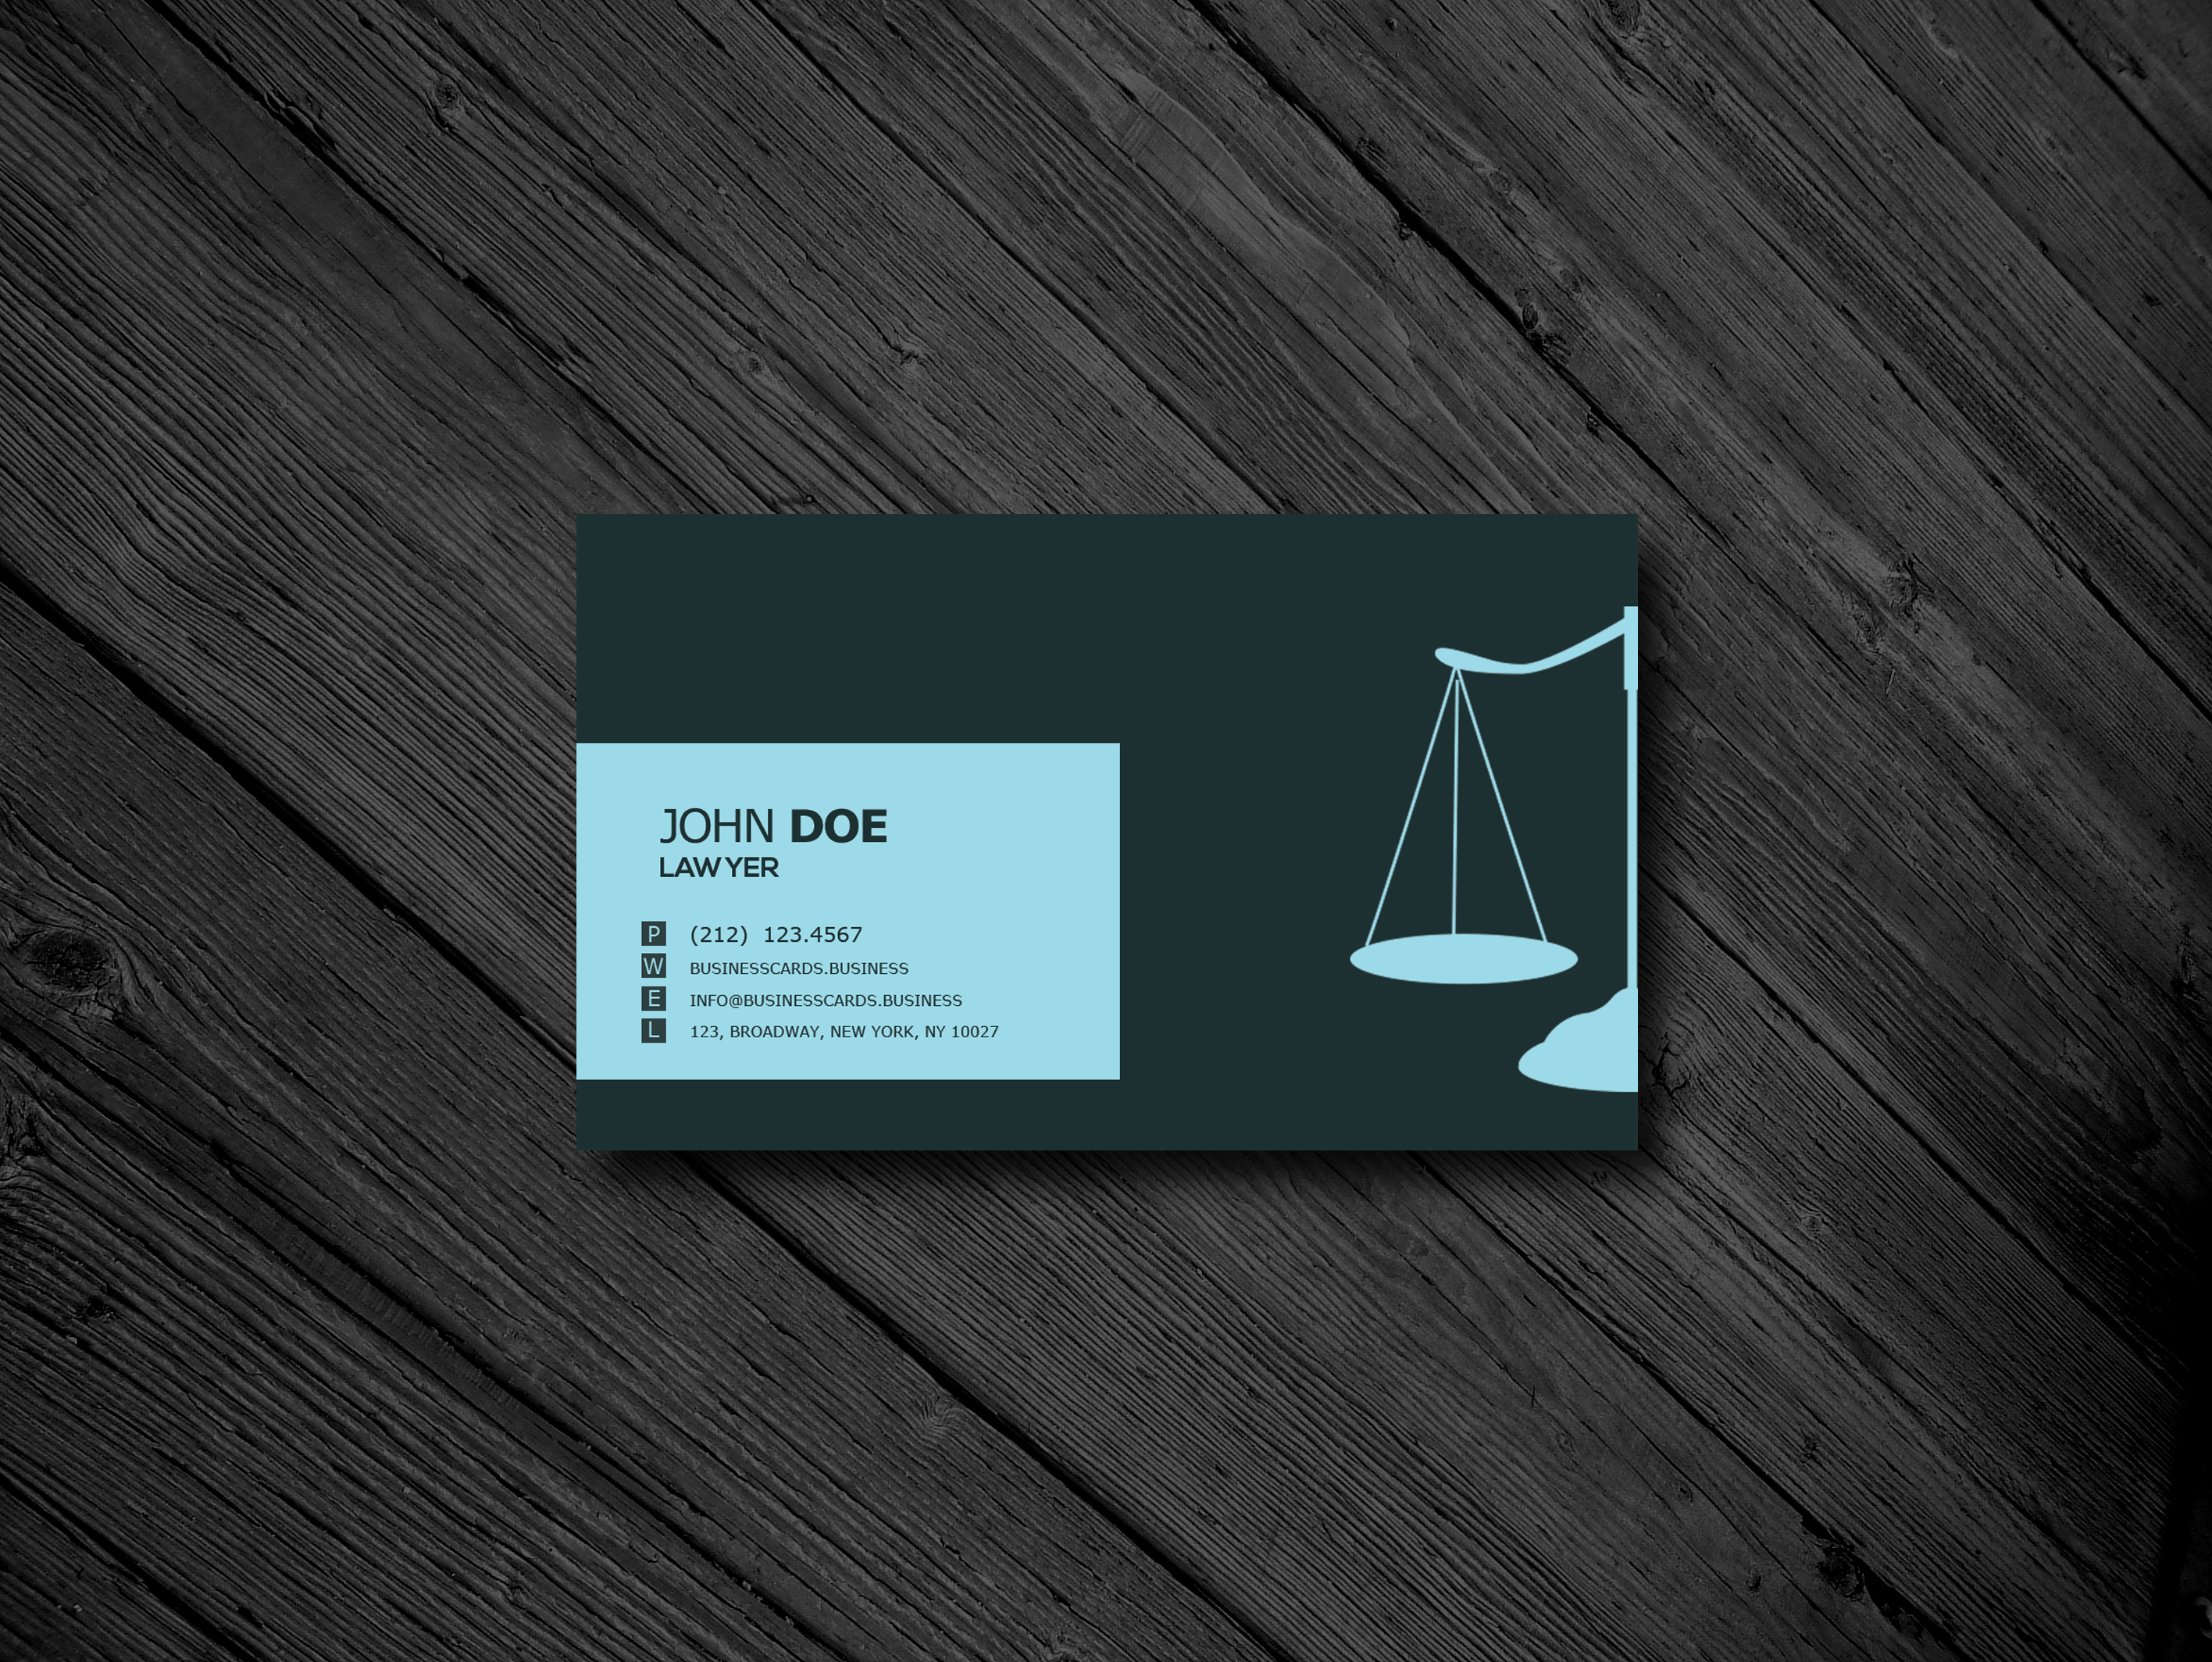 Free business card templates business cards templates free lawyer business card psd template wajeb Images